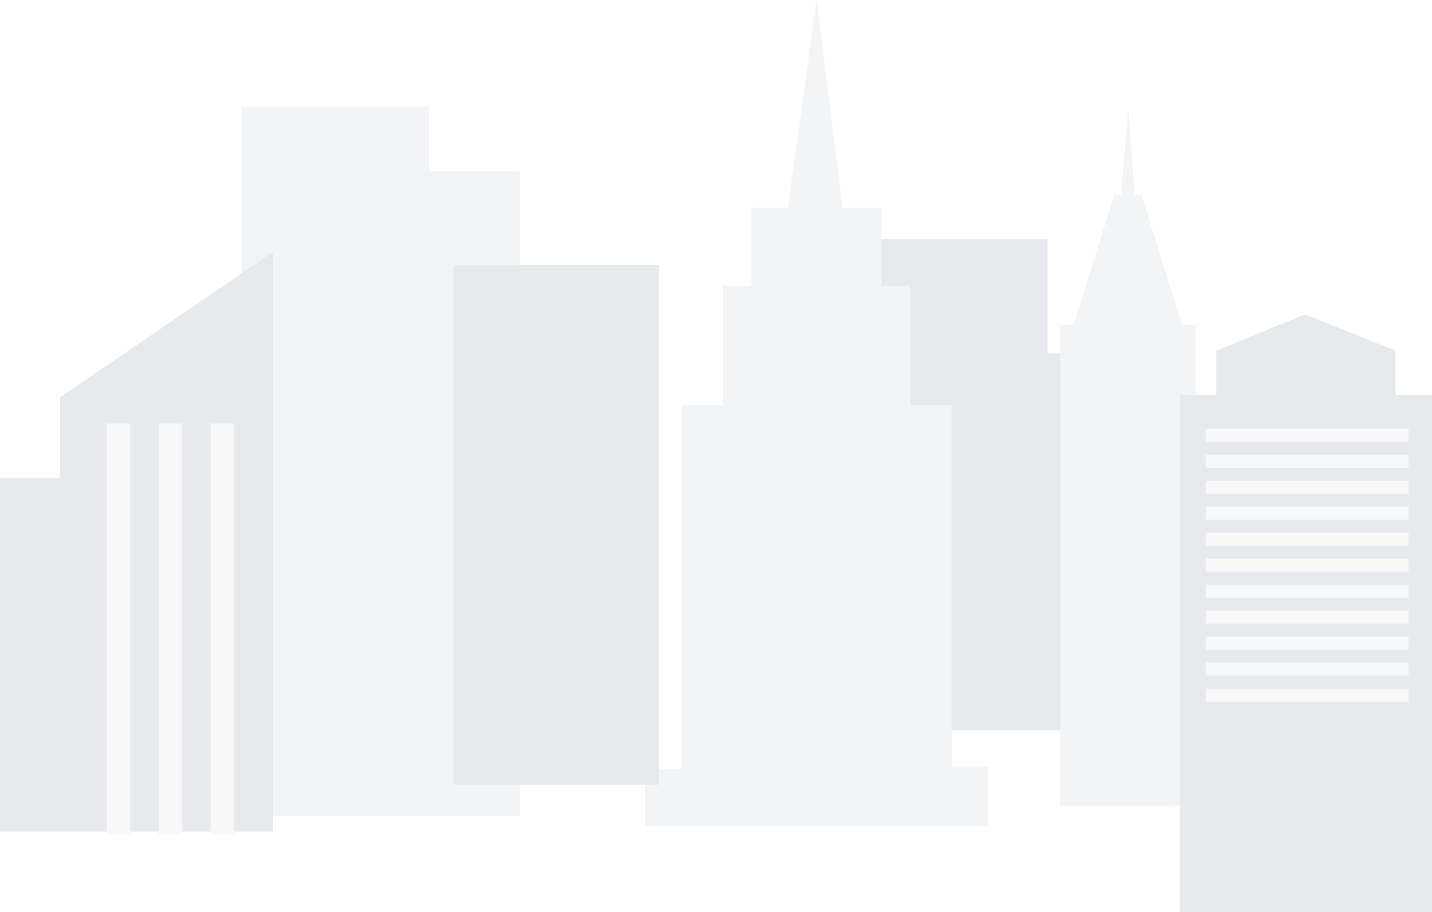 premium upgrade  skyscrapers background Clipart illustration in PNG, SVG